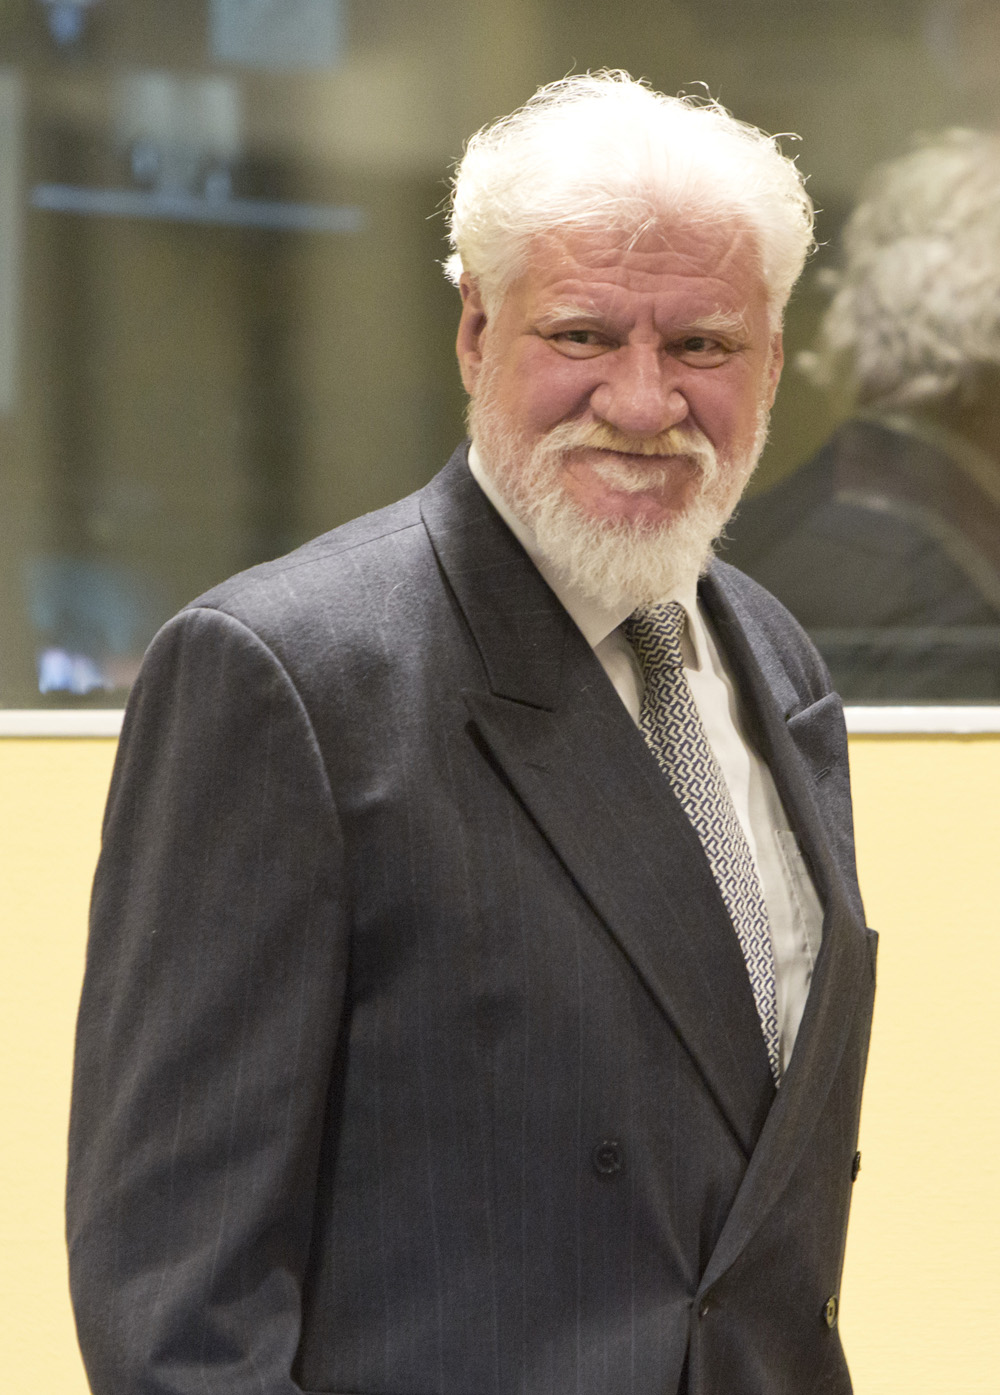 Slobodan Praljak, the alleged Bosnian war criminal committed suicide by taking poison in the court in Hague